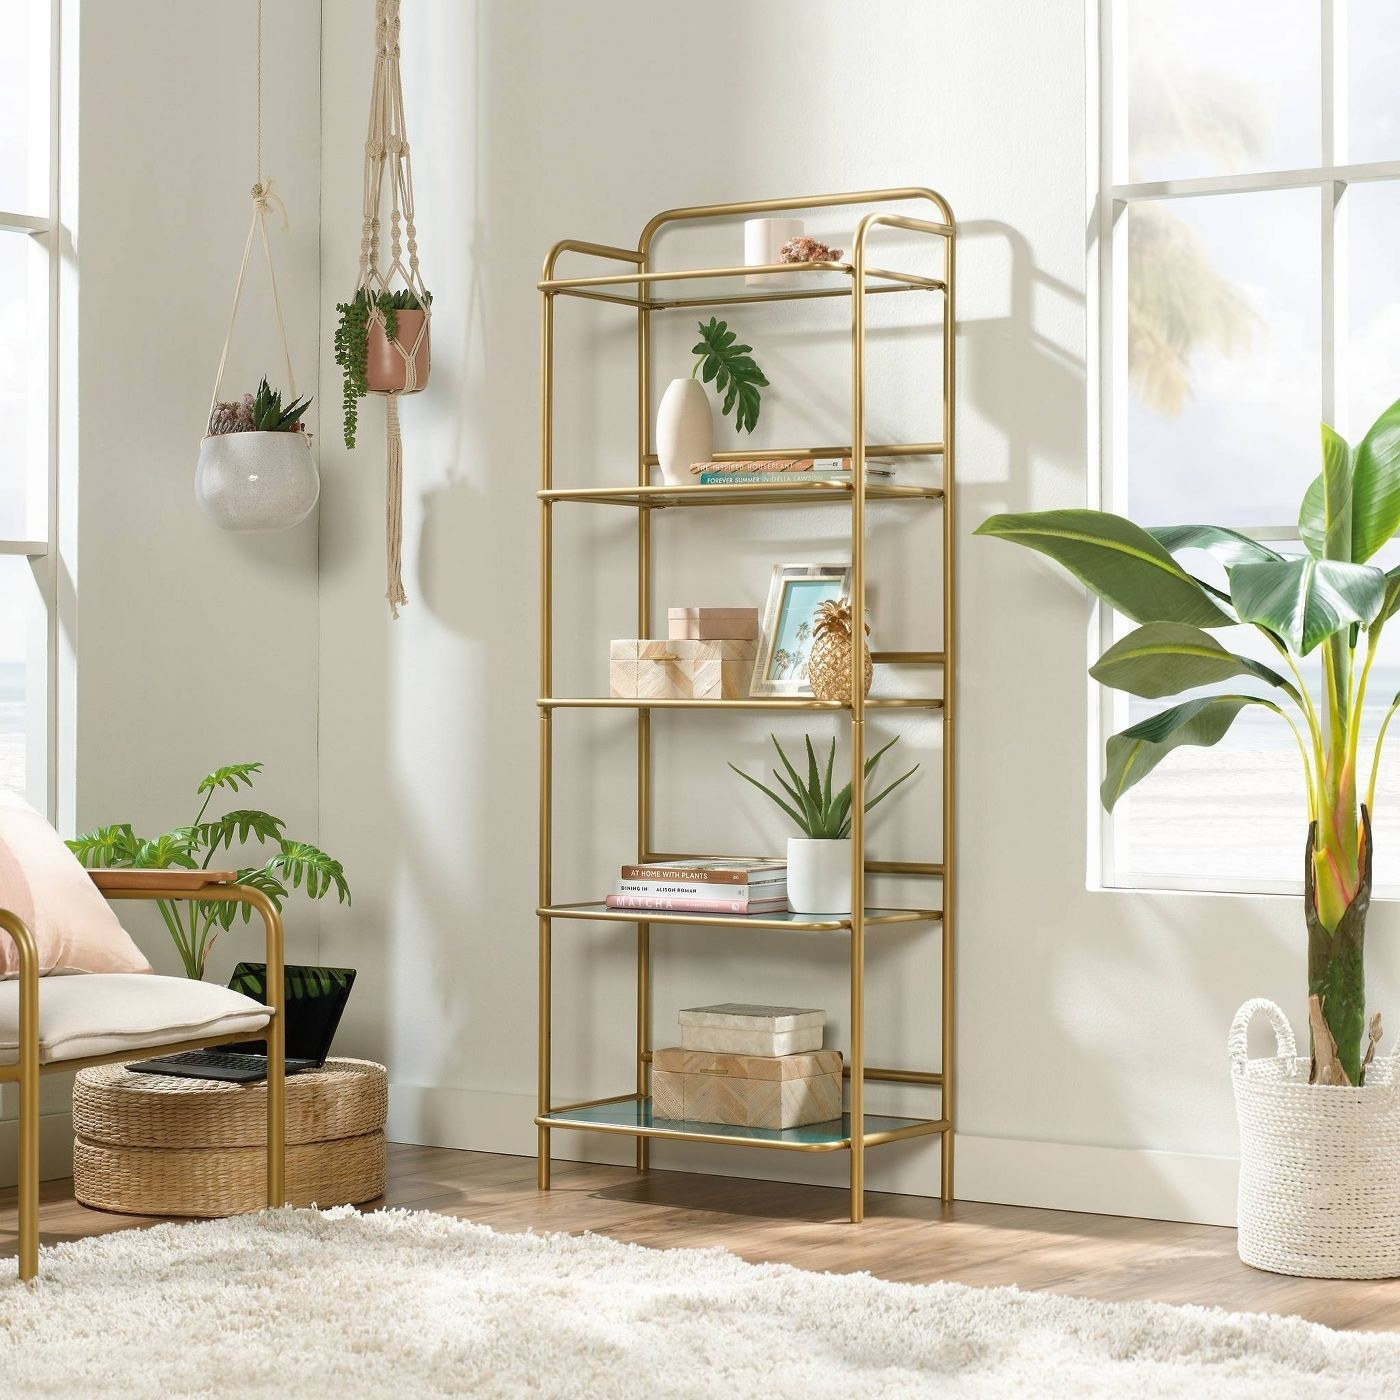 a gold book shelf with glass and teal-tinted shelves